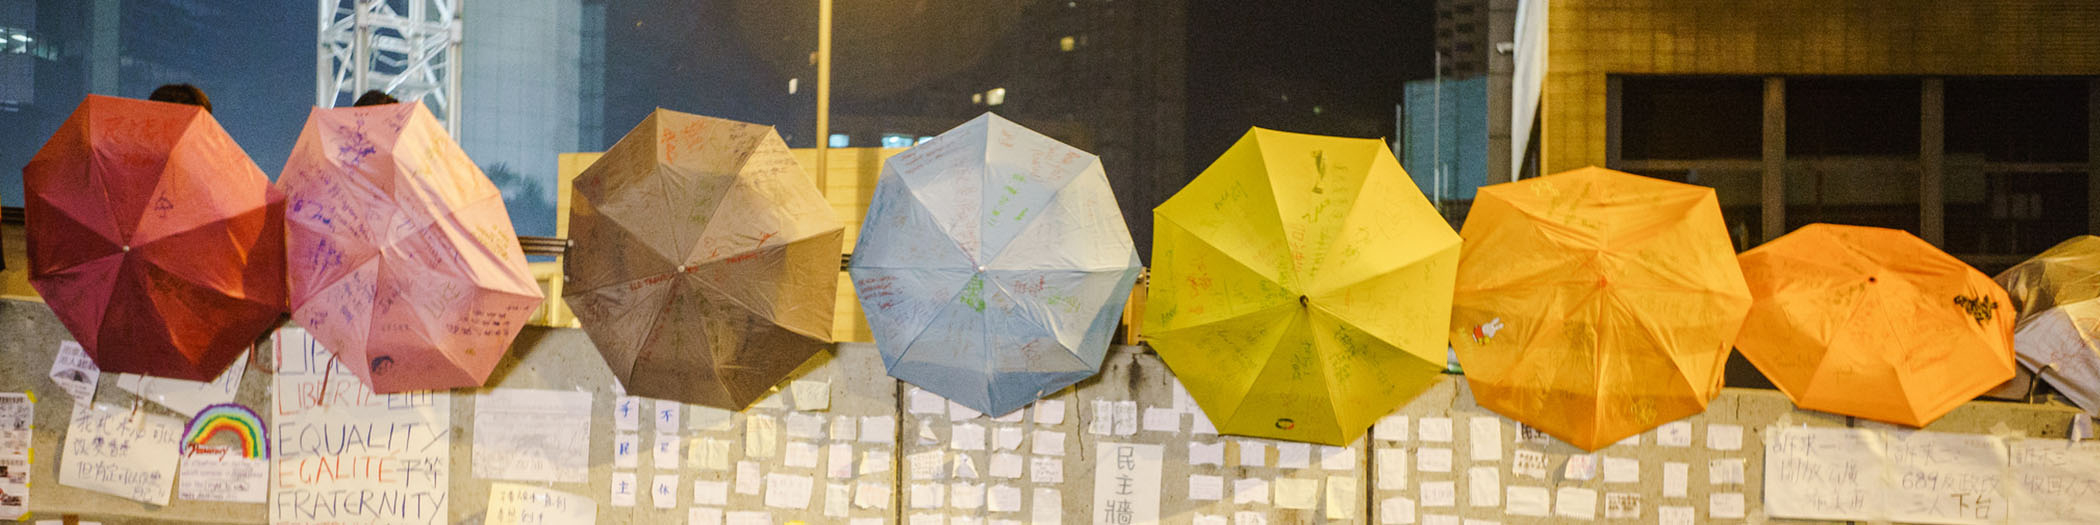 umbrellas resize